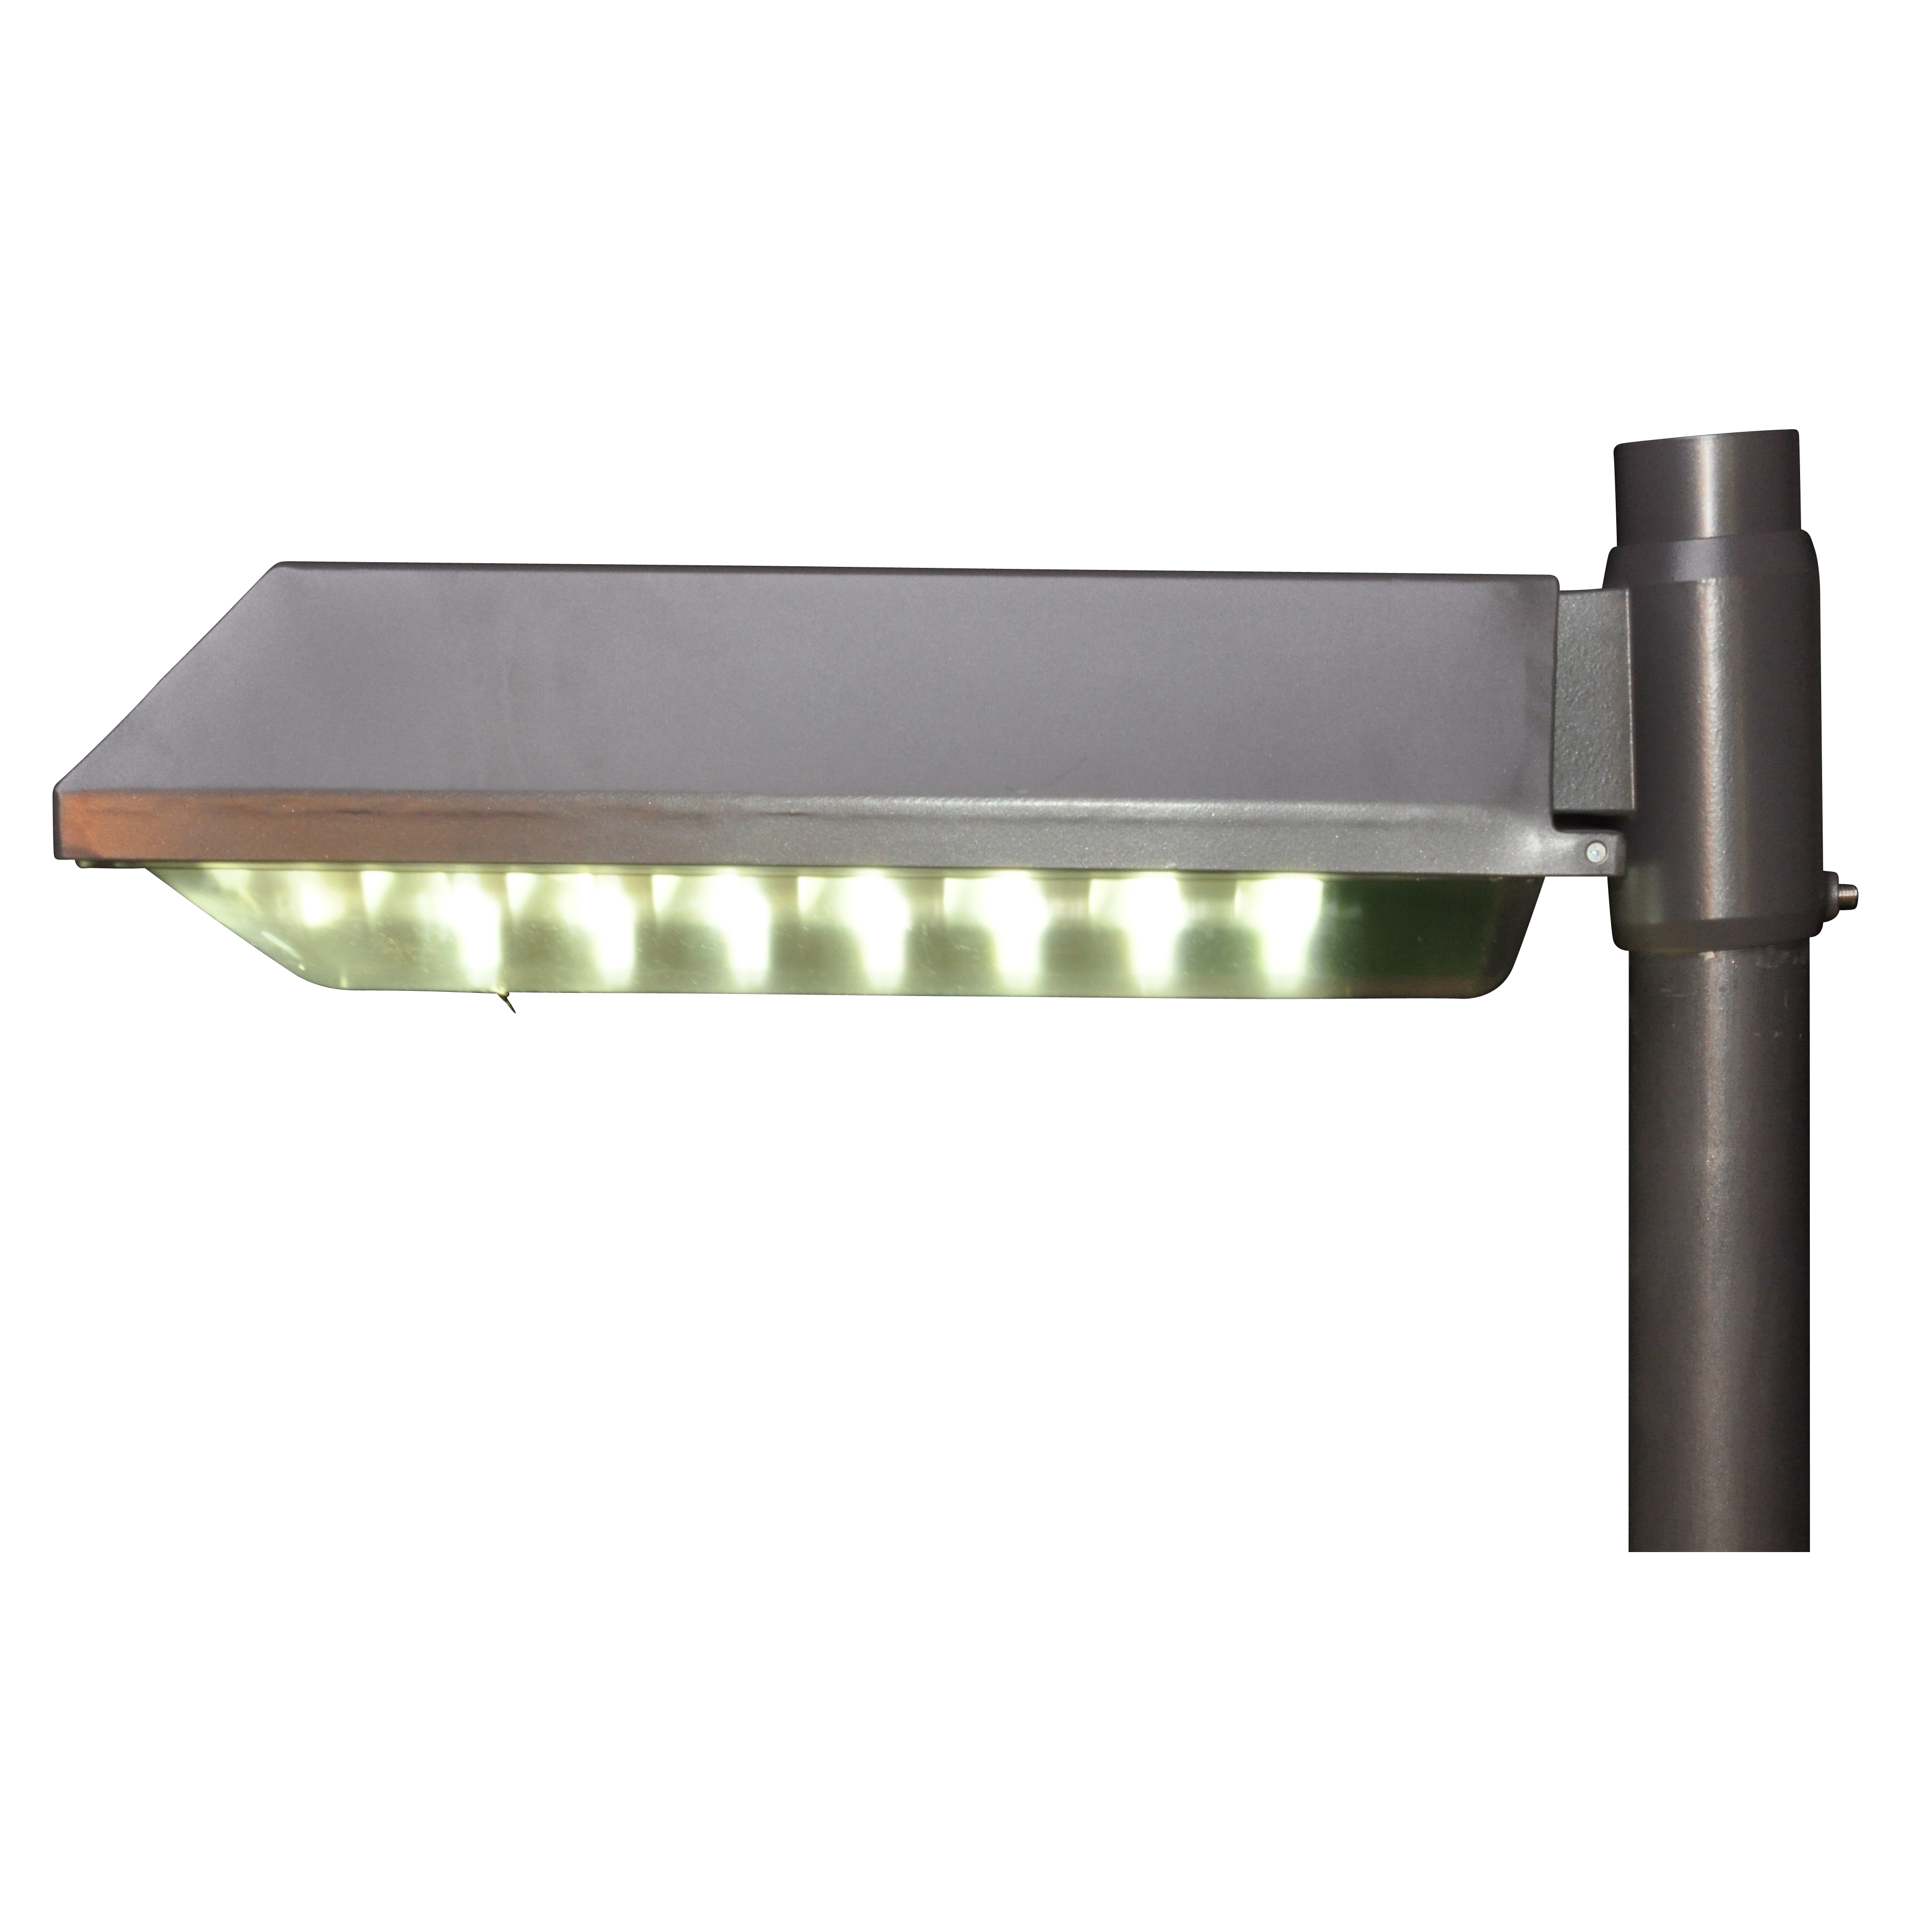 LED City Luminaire B